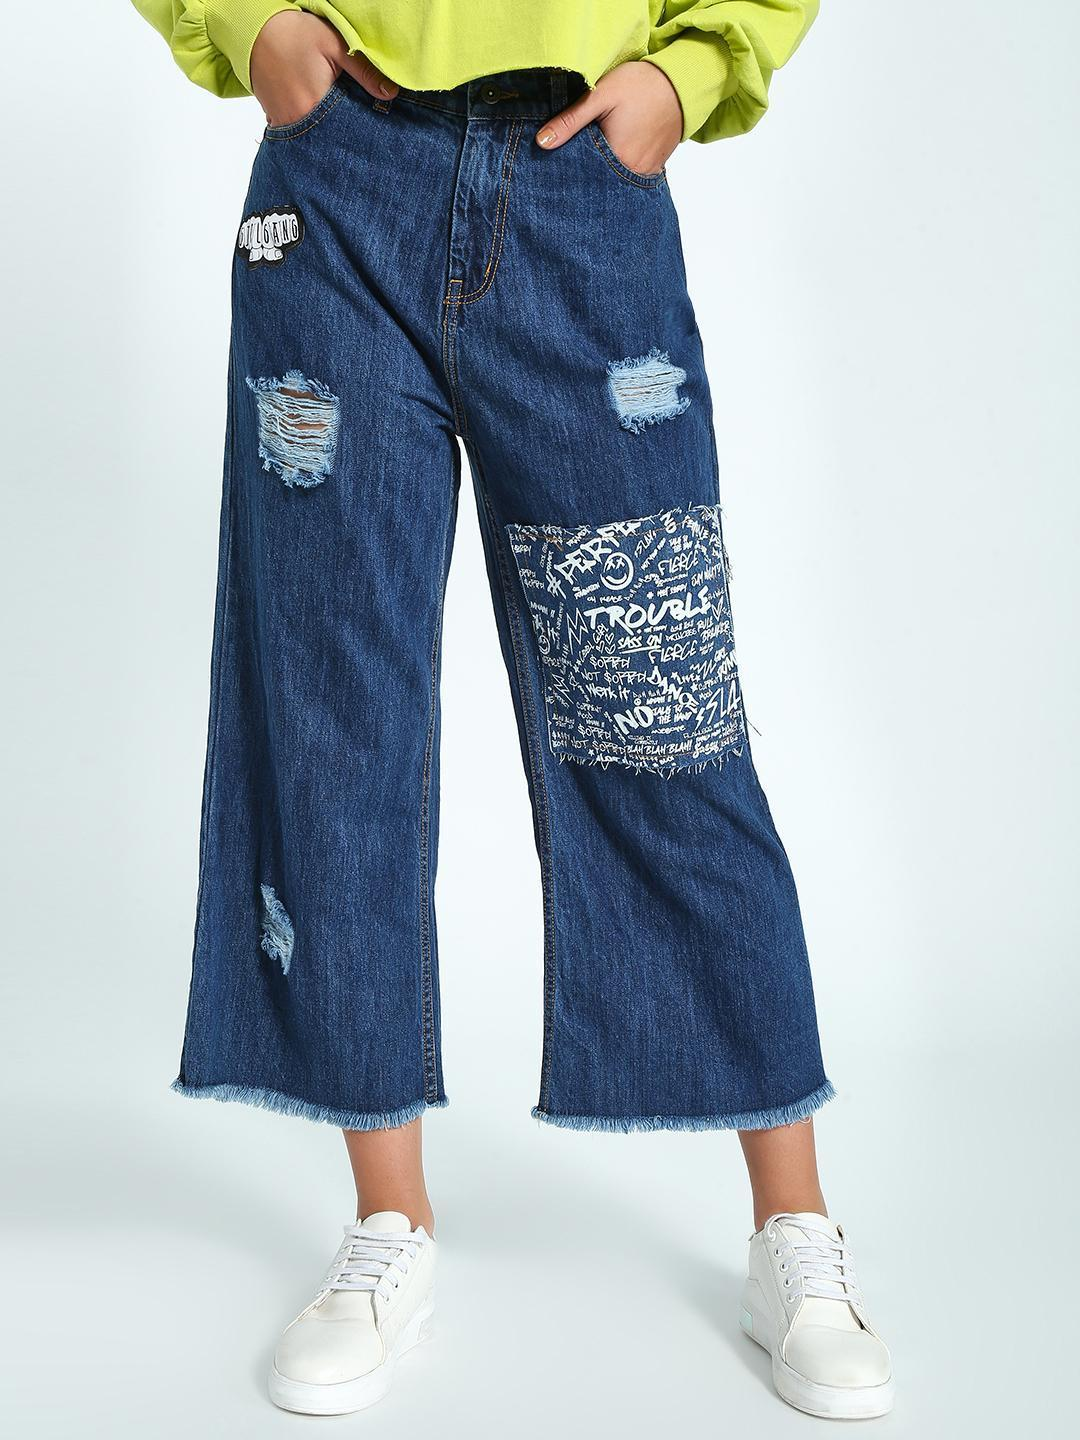 K Denim Dark Blue KOOVS Graffiti Patch Cropped Flared Jeans 1